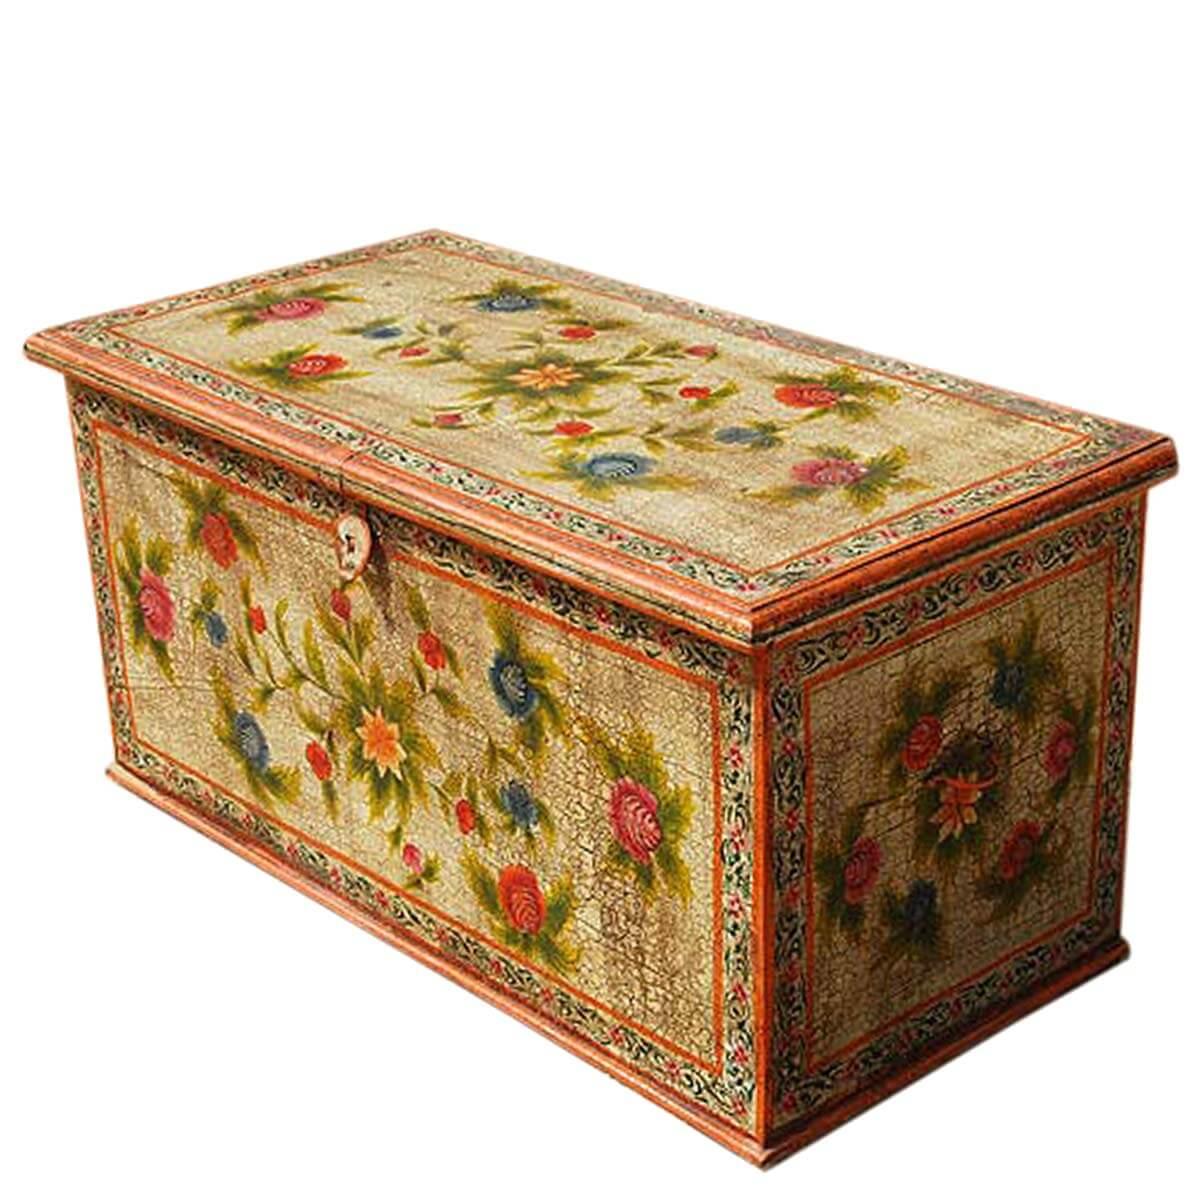 Tremendous Solid Hardwood Hand Painted Storage Trunk Coffee Table Onthecornerstone Fun Painted Chair Ideas Images Onthecornerstoneorg